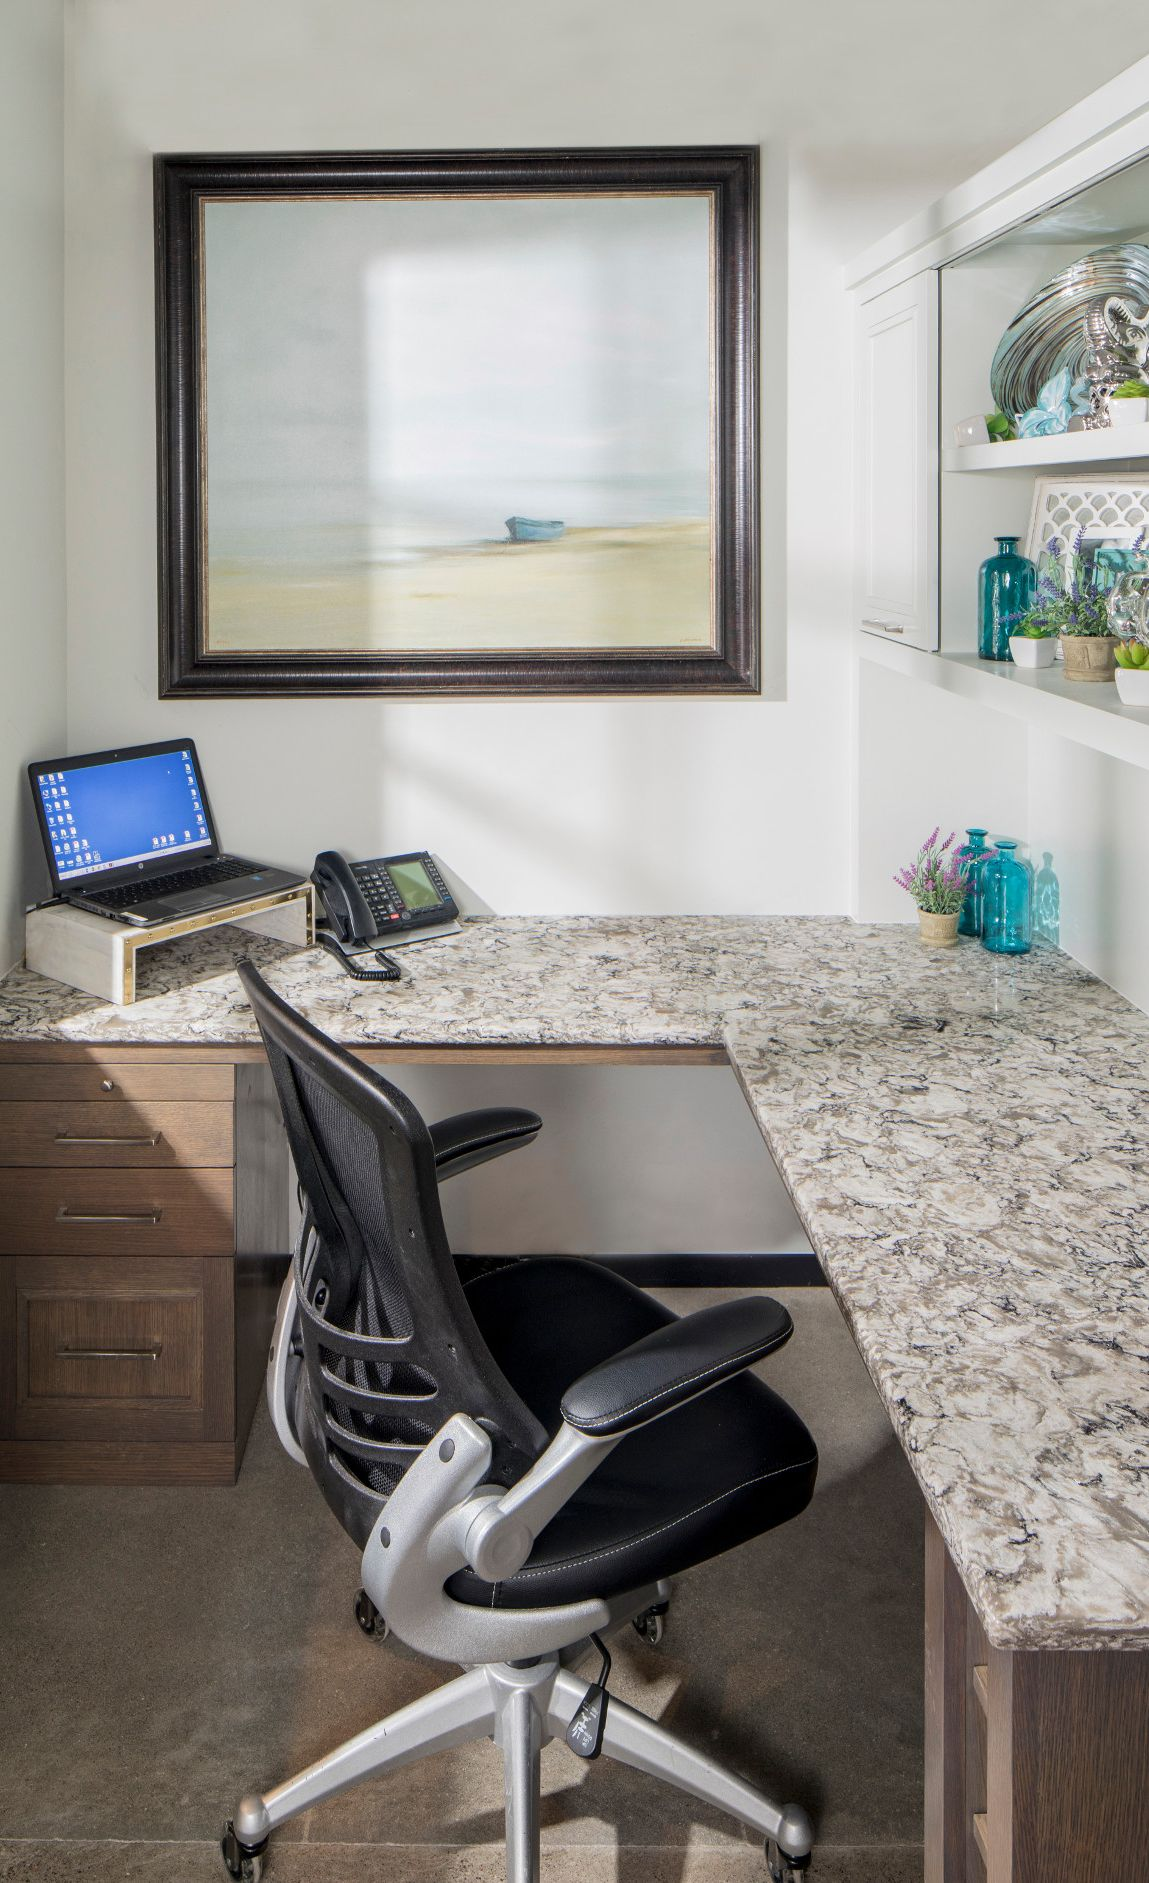 Cambria Bellingham™ desk offers a durable granite alternative in this efficient home office.